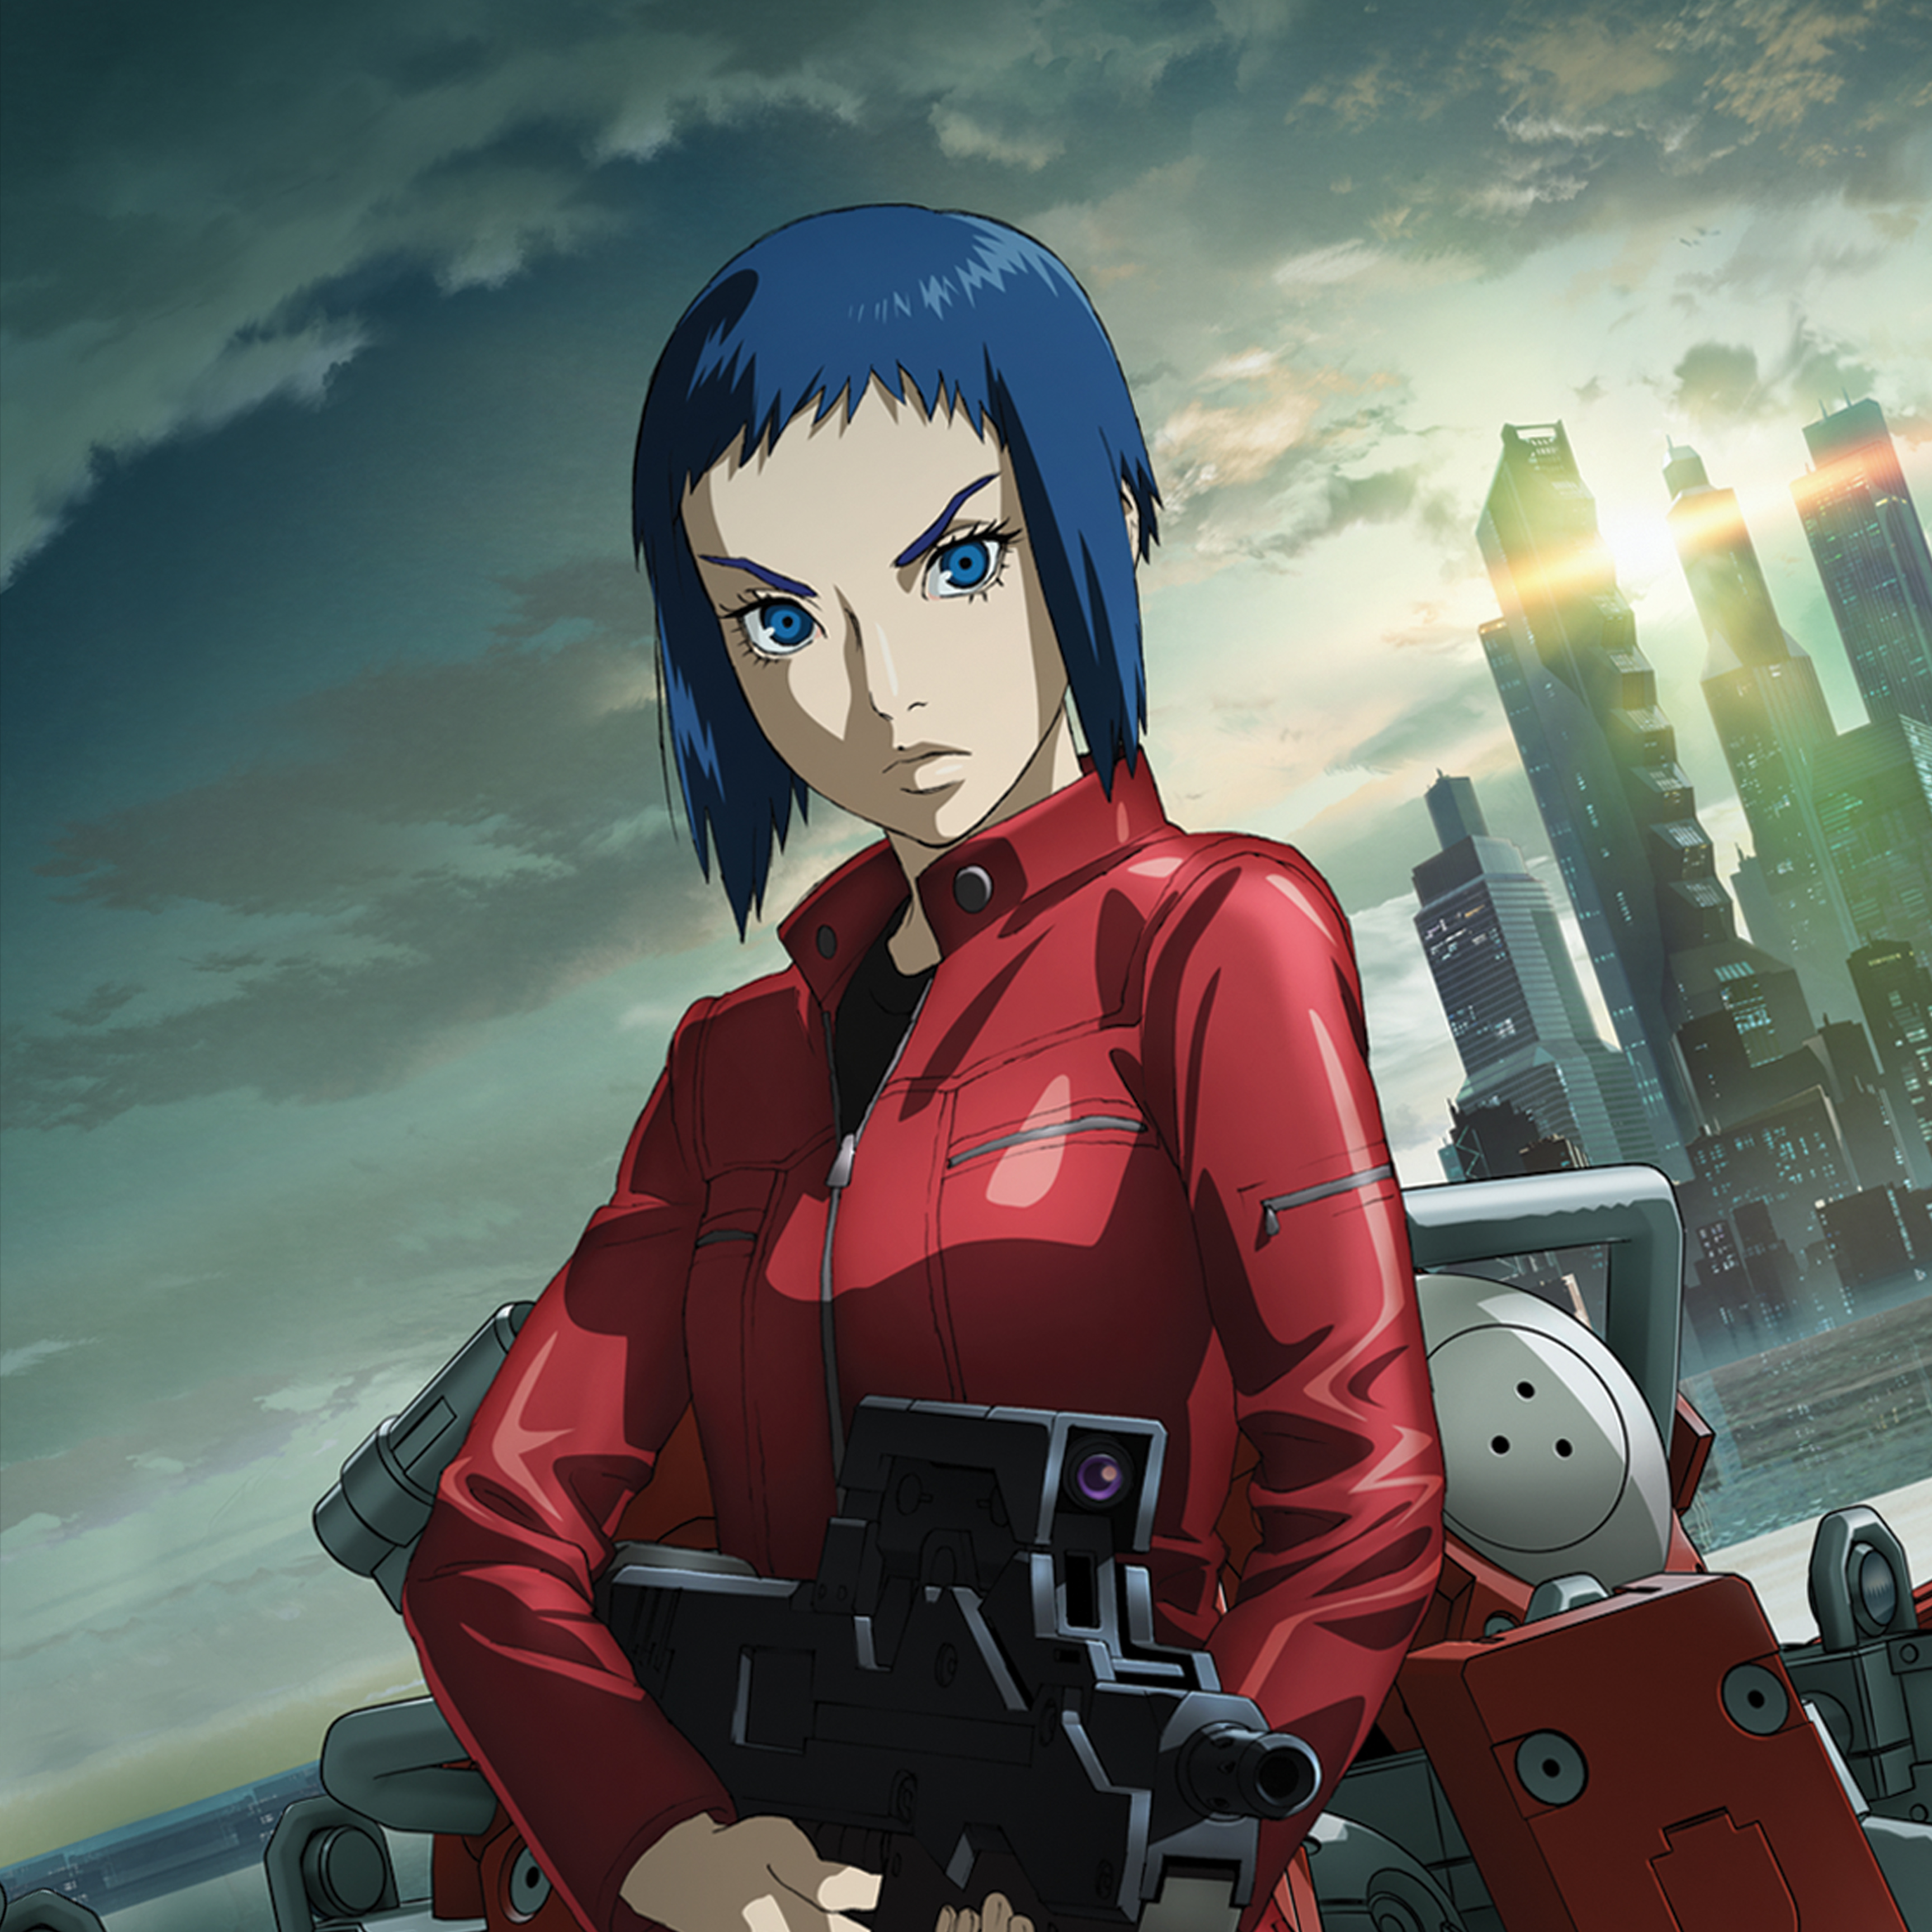 Watch Ghost In The Shell Arise Sub Dub Action Adventure Sci Fi Anime Funimation